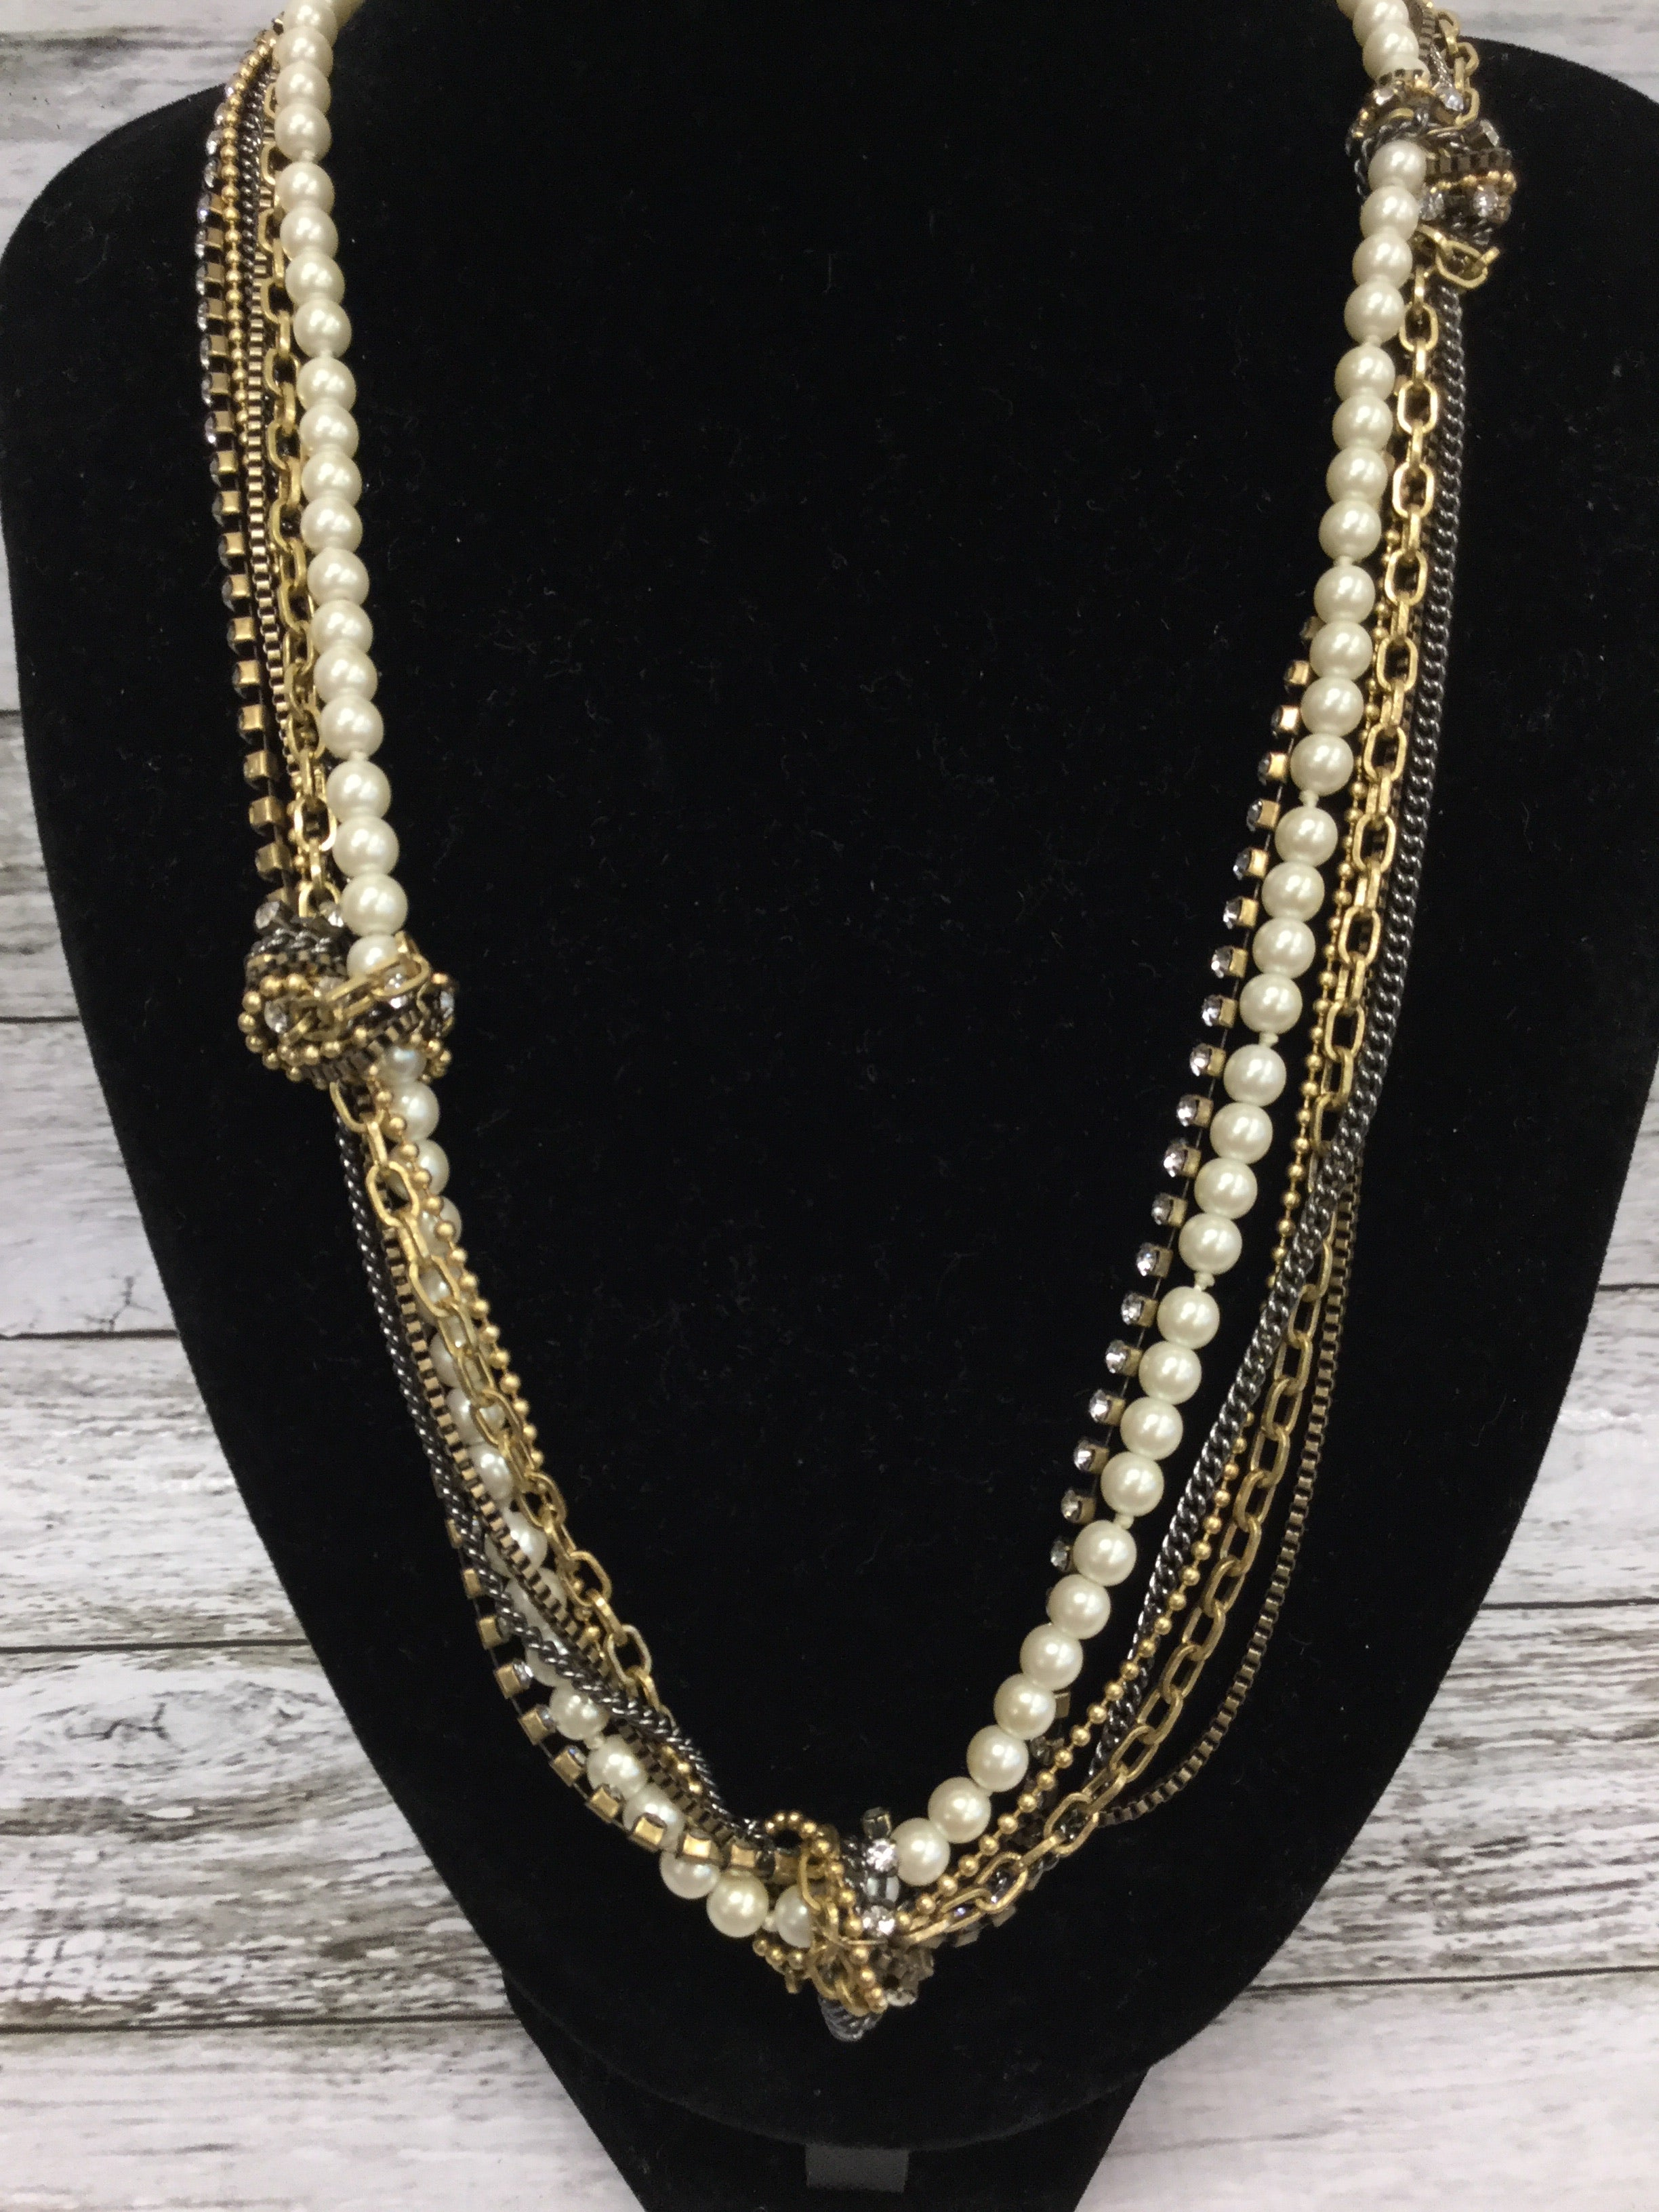 Photo #1 - BRAND: J CREW , STYLE: NECKLACE , COLOR: GOLD , SKU: 127-2767-89764, , GOLD AND PEARL J CREW NECKLACE IN GREAT CONDITION!